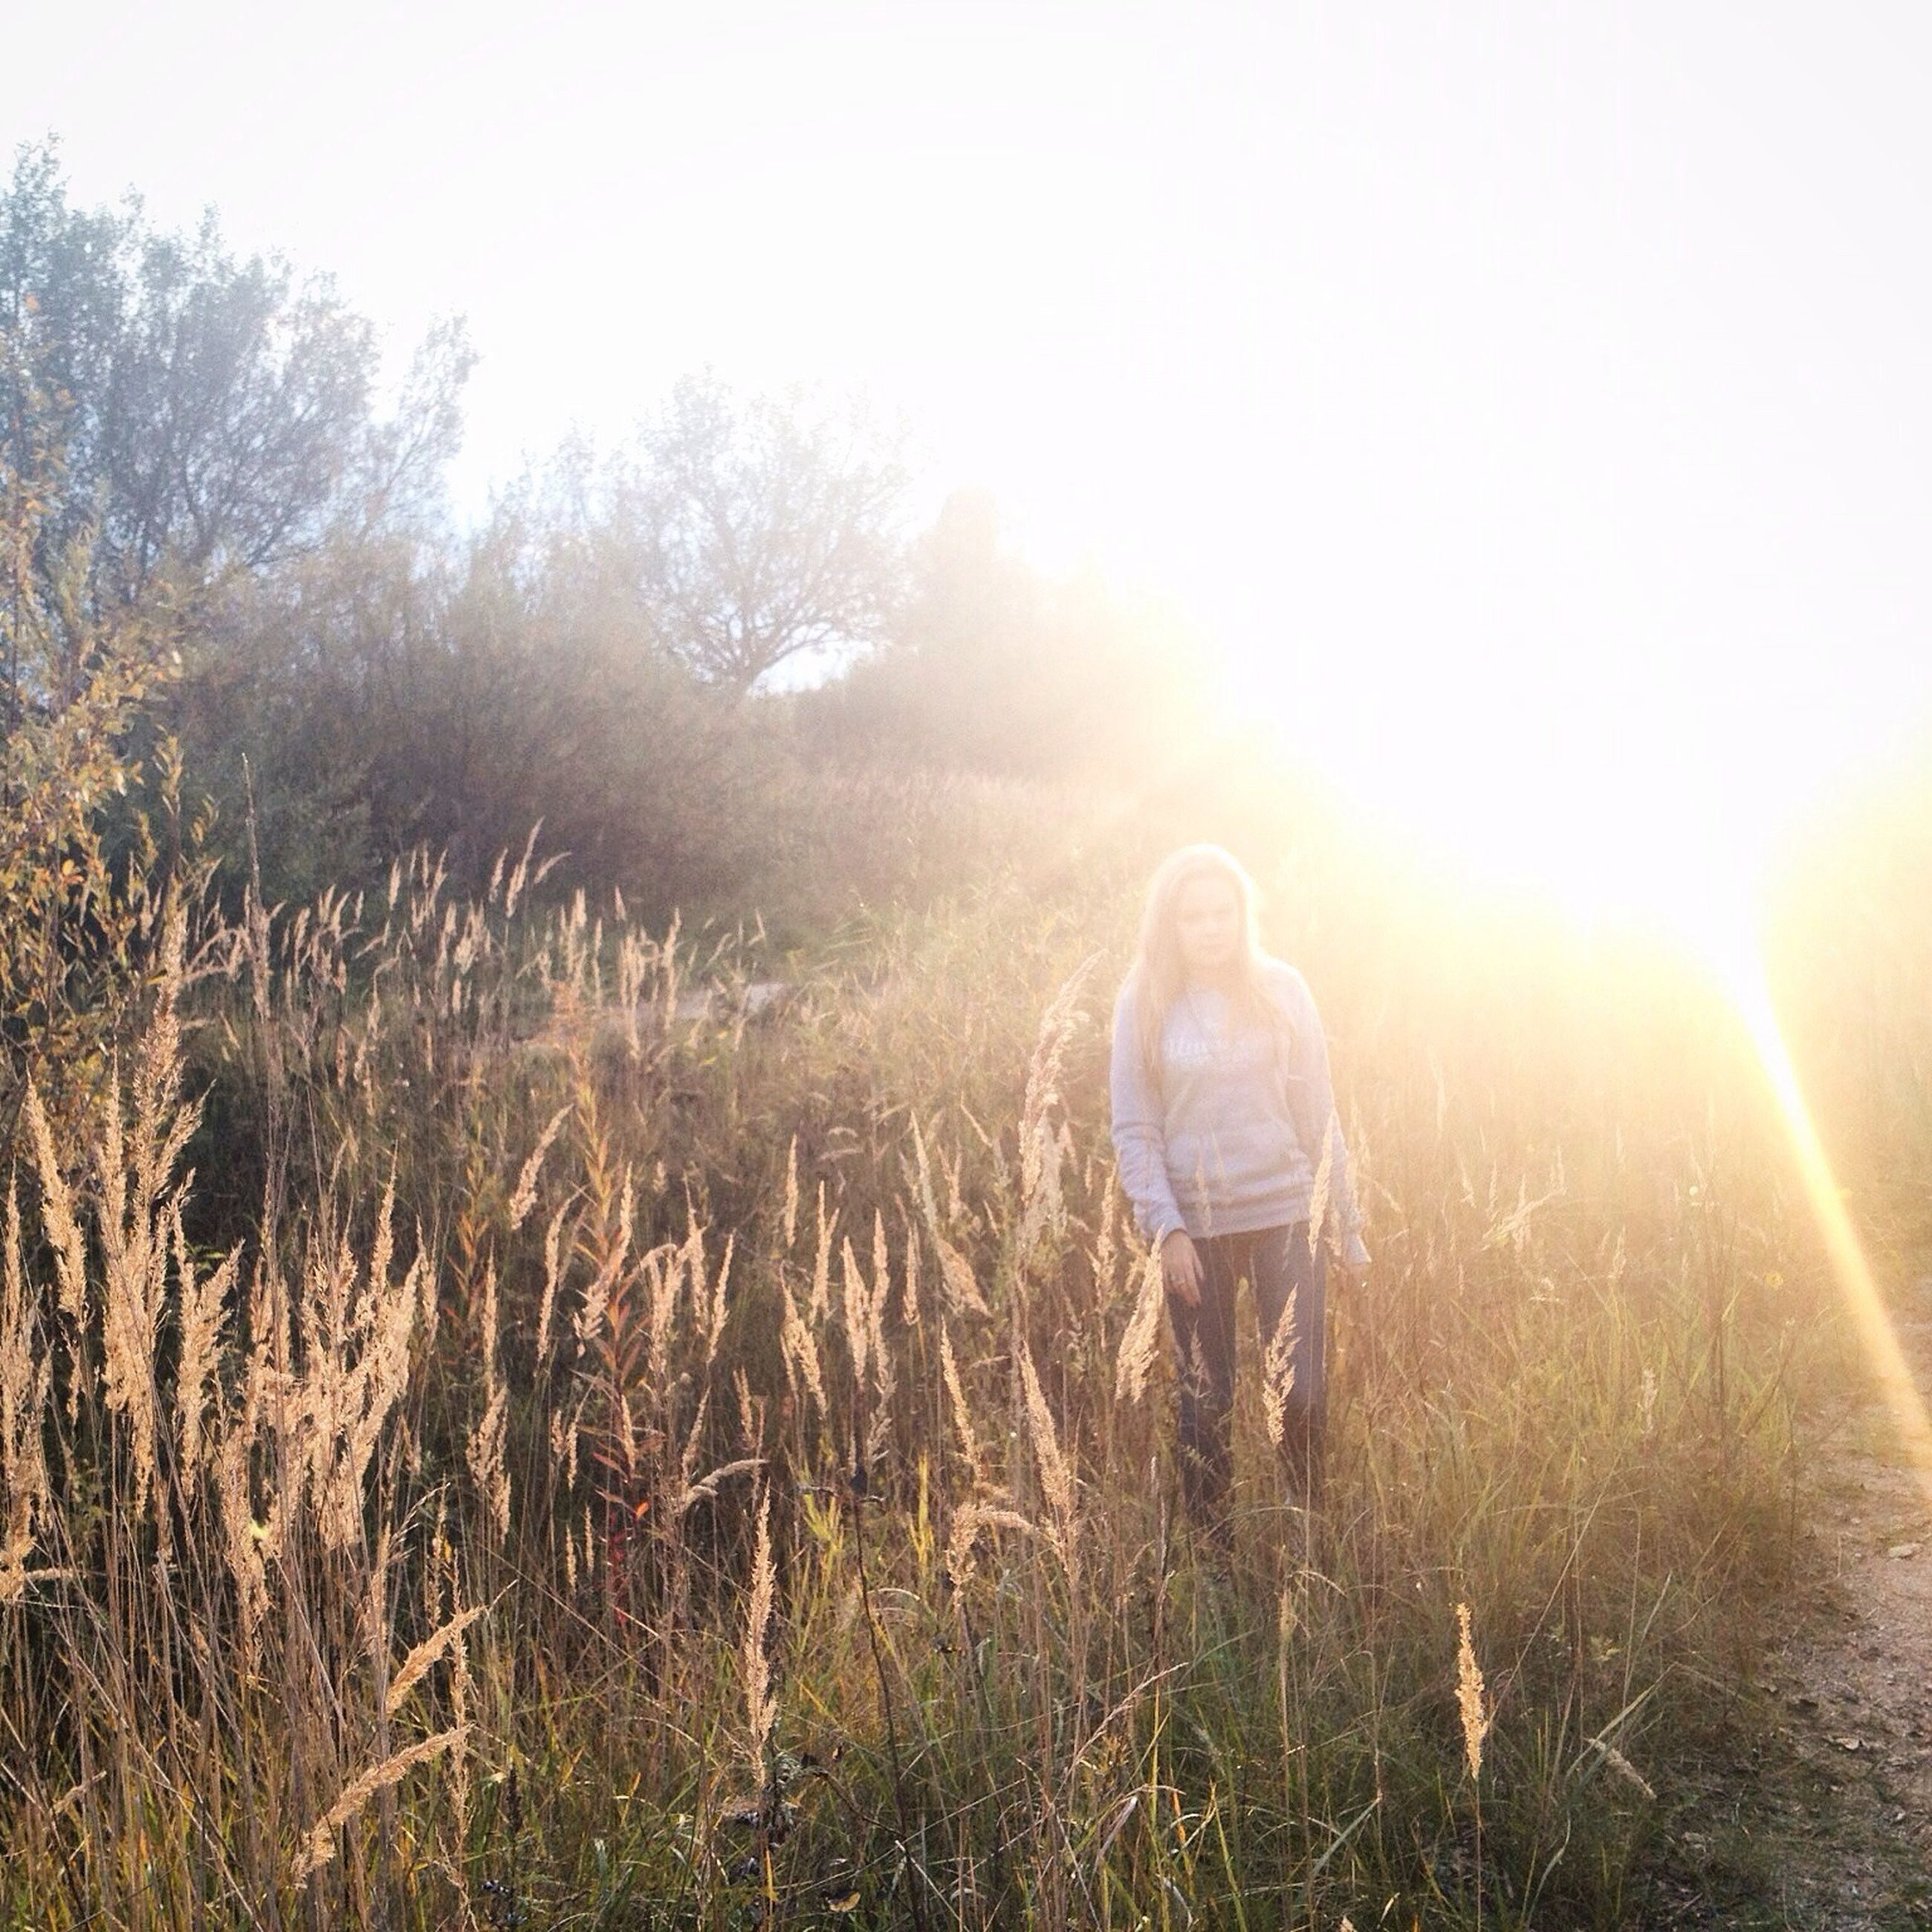 lifestyles, field, leisure activity, grass, sun, rear view, casual clothing, sunbeam, sunlight, full length, lens flare, standing, landscape, nature, plant, clear sky, tranquility, growth